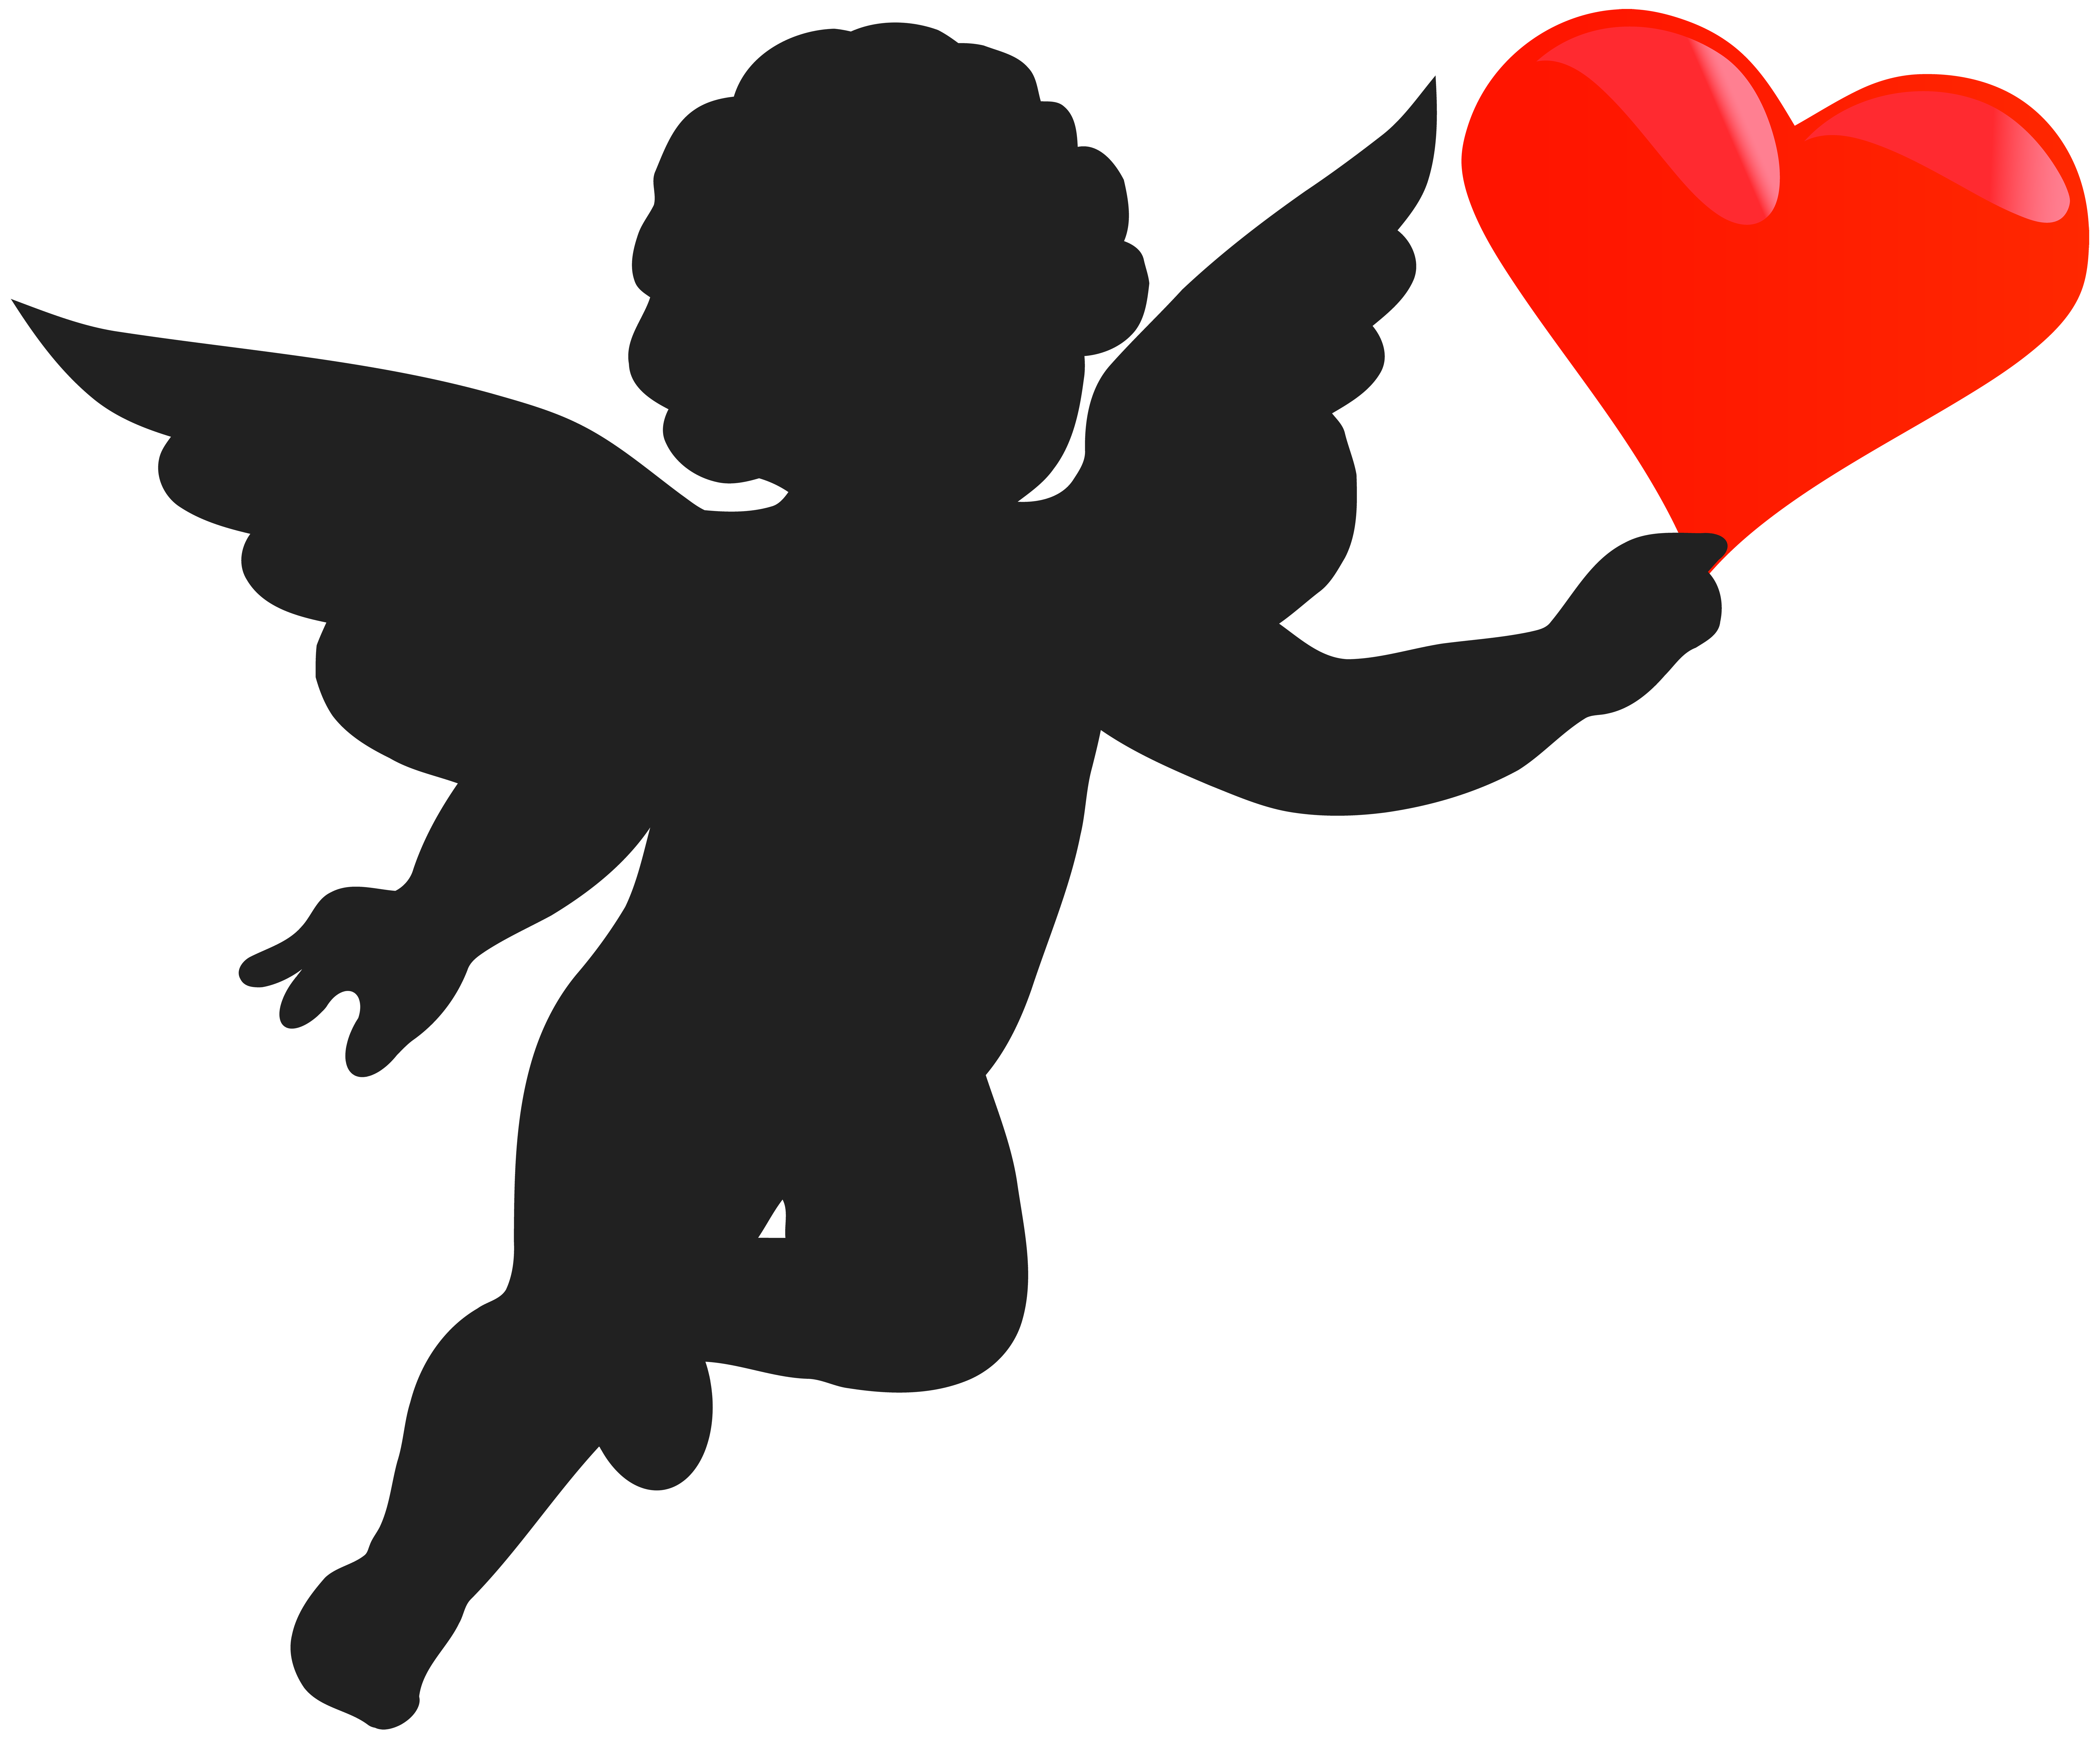 Cupid with heart silhouette. Hearts clipart character